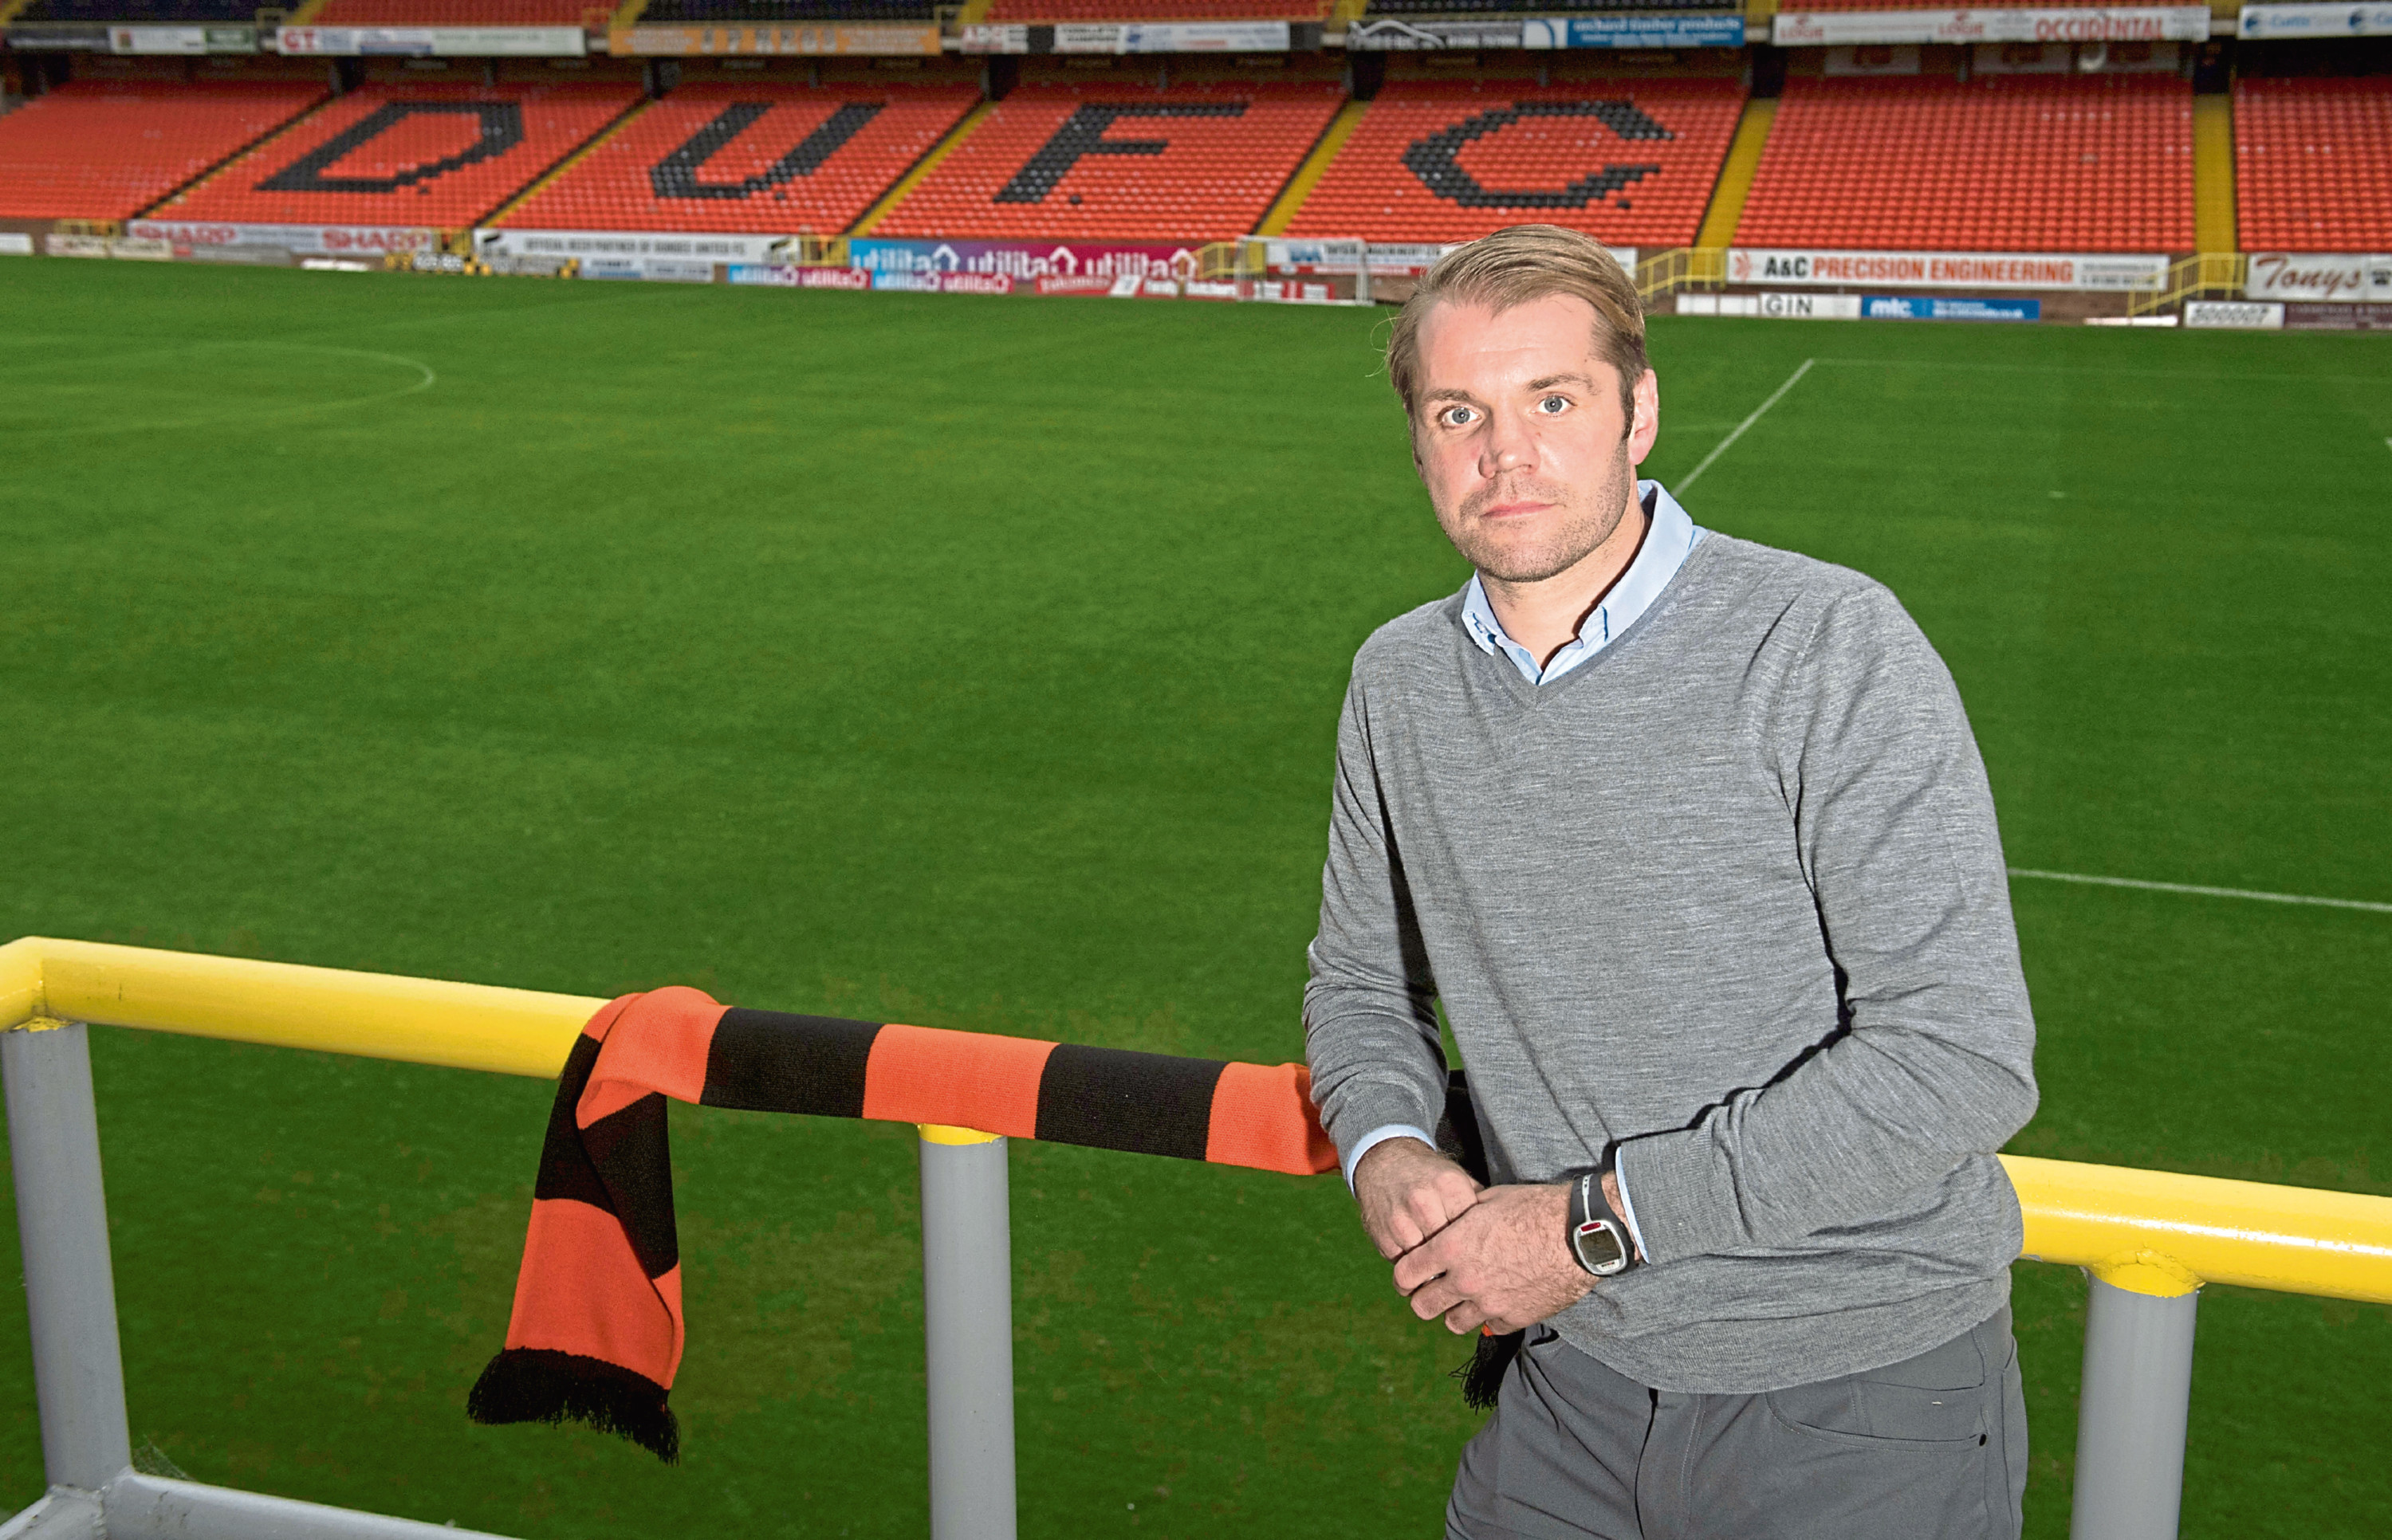 Robbie Neilson was unveiled as the Dundee United manager at Tannadice on Tuesday evening where he promised to put a team on the park supporters can be proud of.